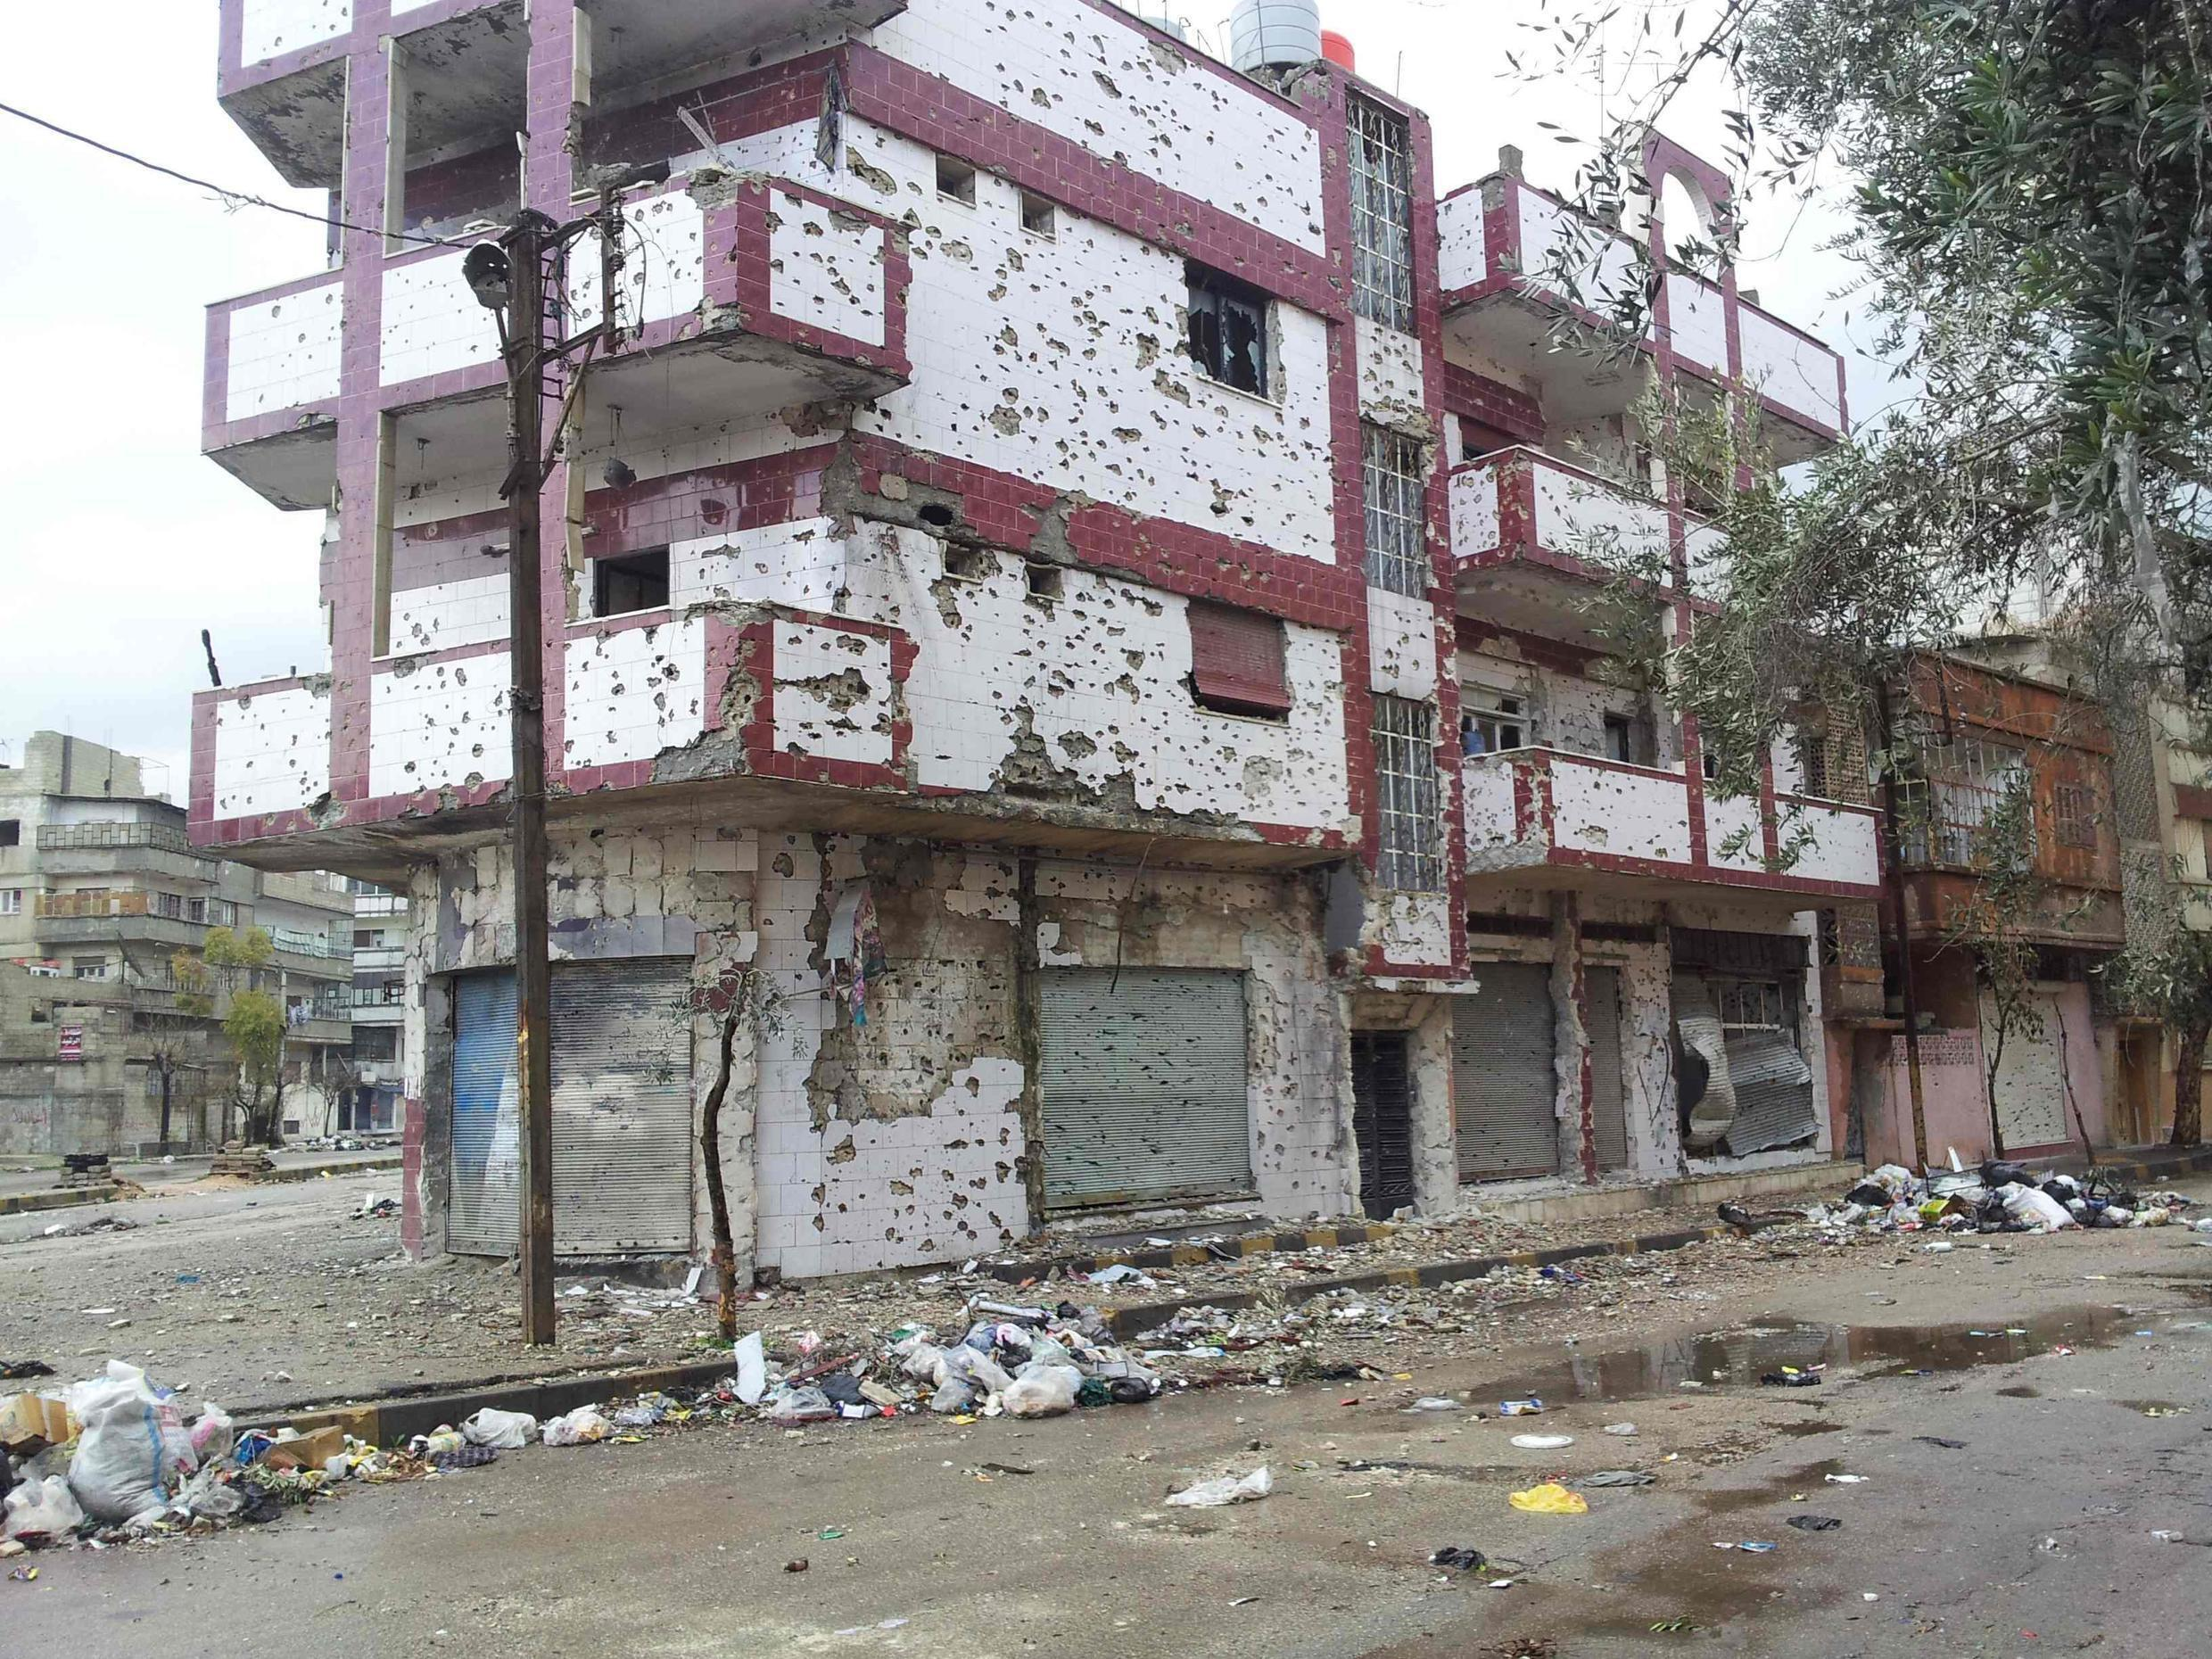 Damaged buildings in the Bab Sabaa district of Homs, where the journalists were hit